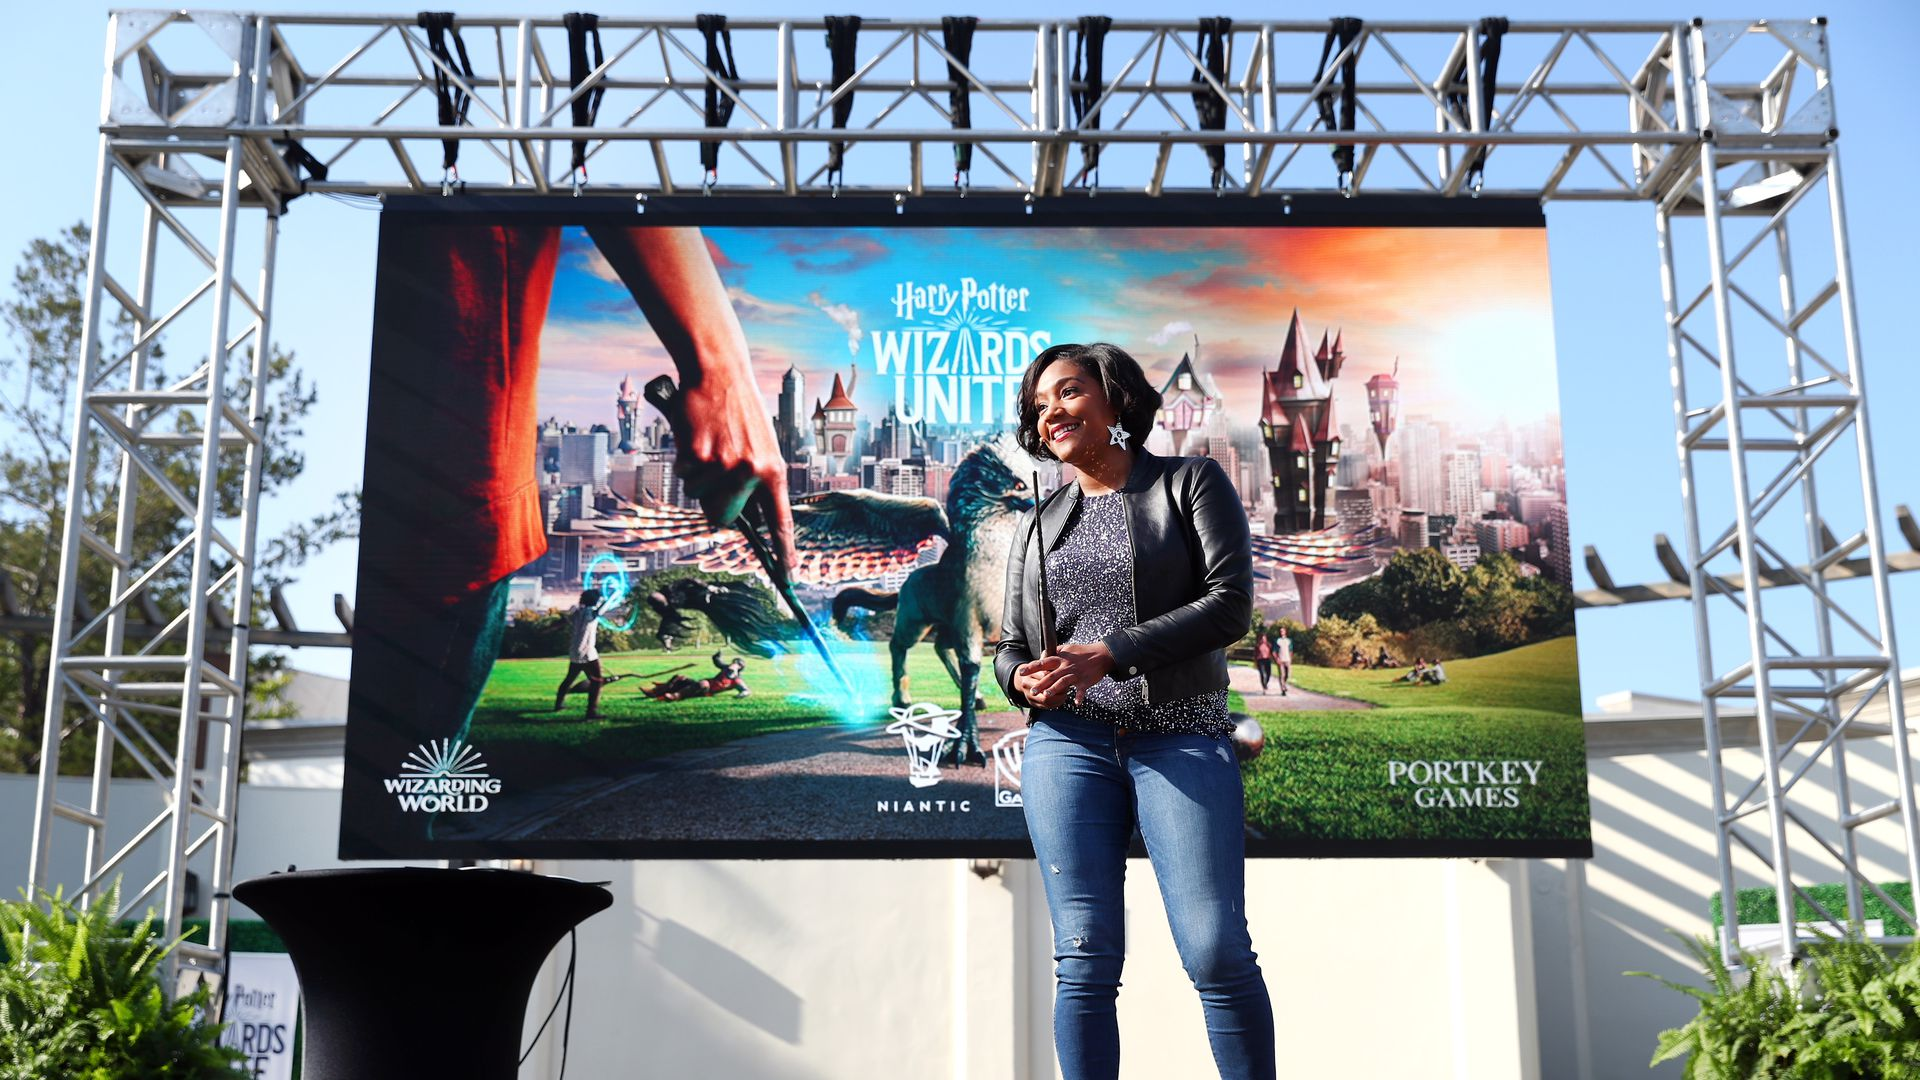 In this image, Tiffany Haddish stands outside on stage with the poster for Wizards Unite behind her.